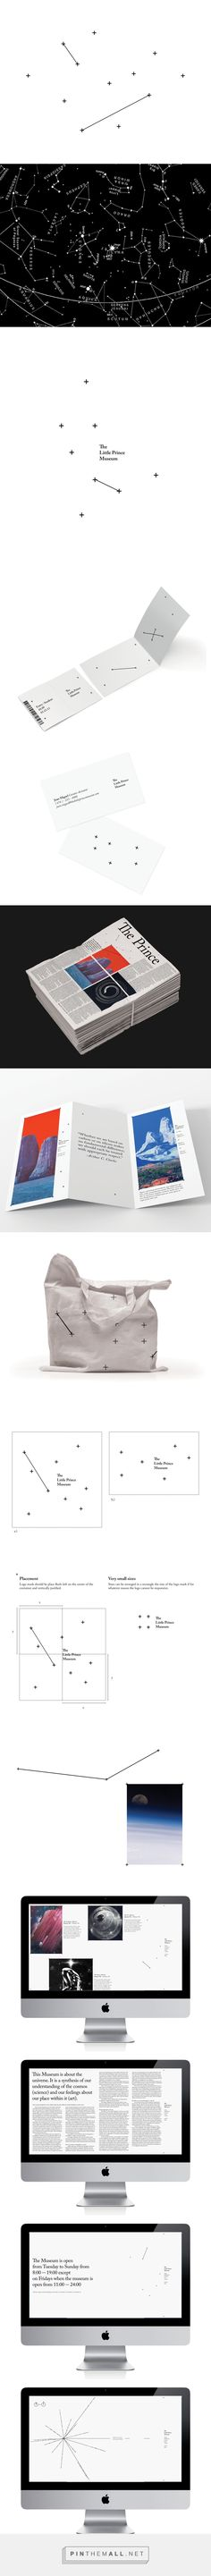 The Little Prince Museum on Branding Served... - a grouped images picture - Pin Them All